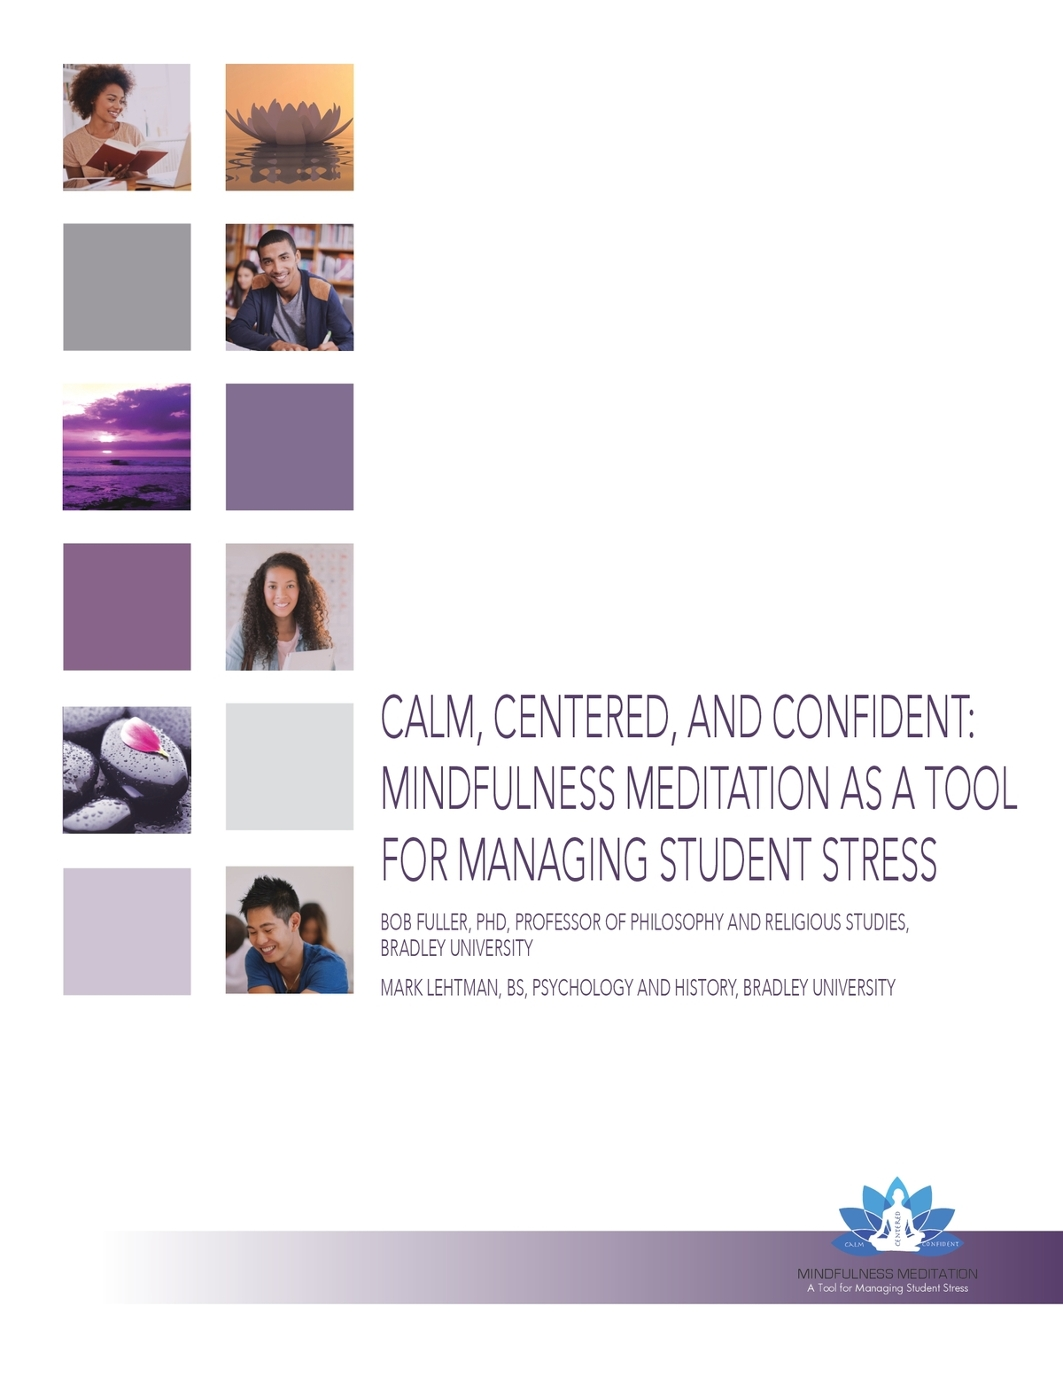 How to Manage Student Stress with Meditation recommendations